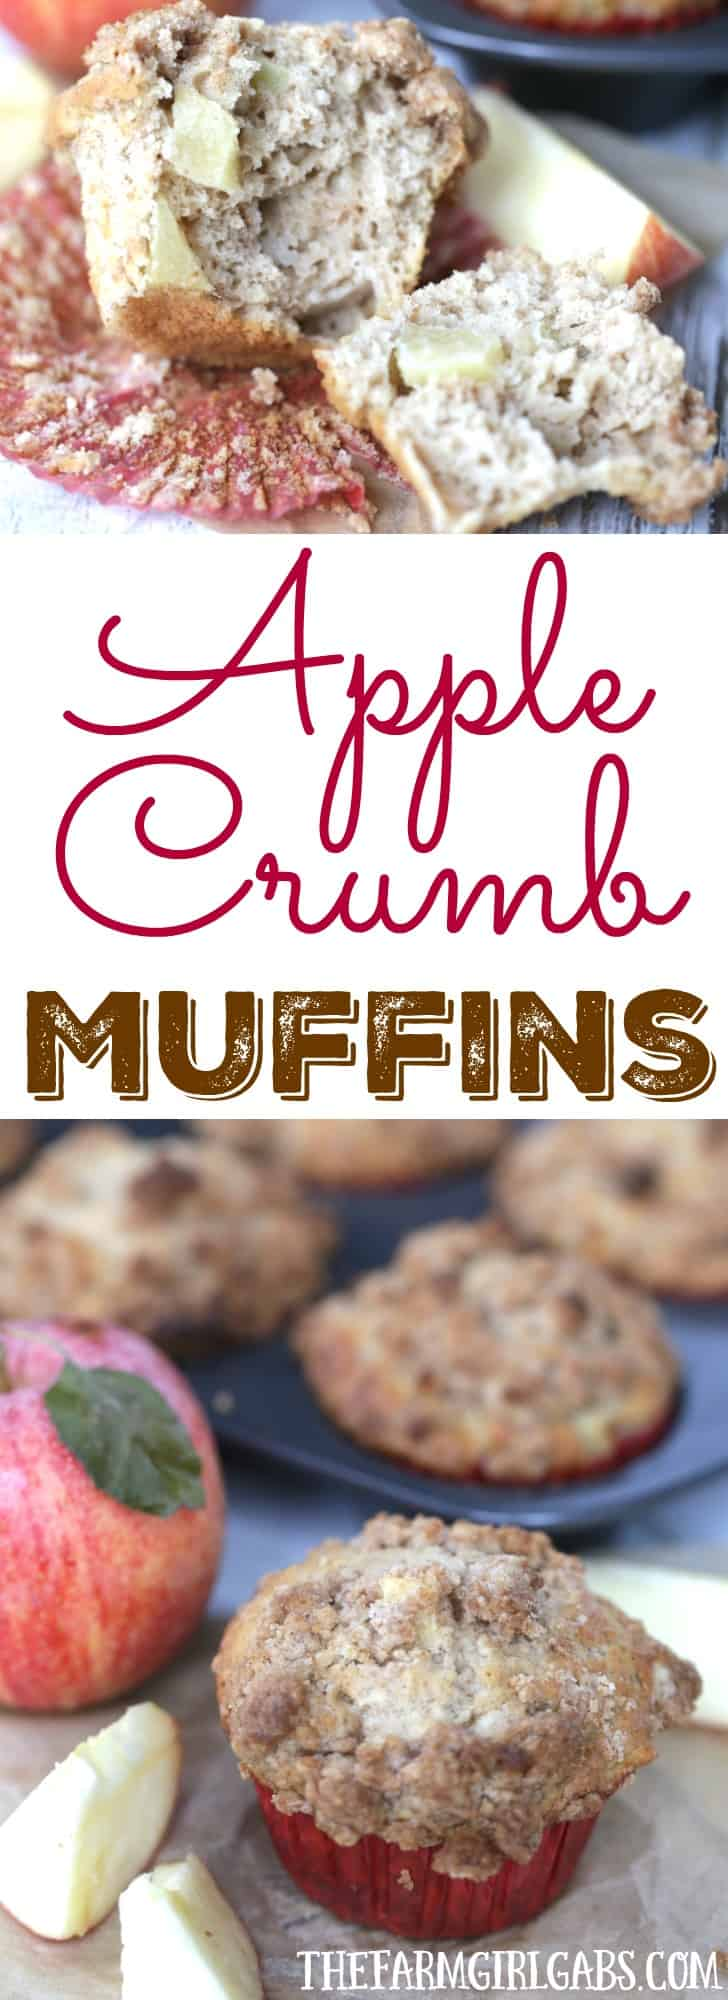 My family proclaimed these the BEST Apple Crumb Muffins ever. This recipe is filled with lots of sweet apples and topped with a buttery cinnamon and brown sugar topping.